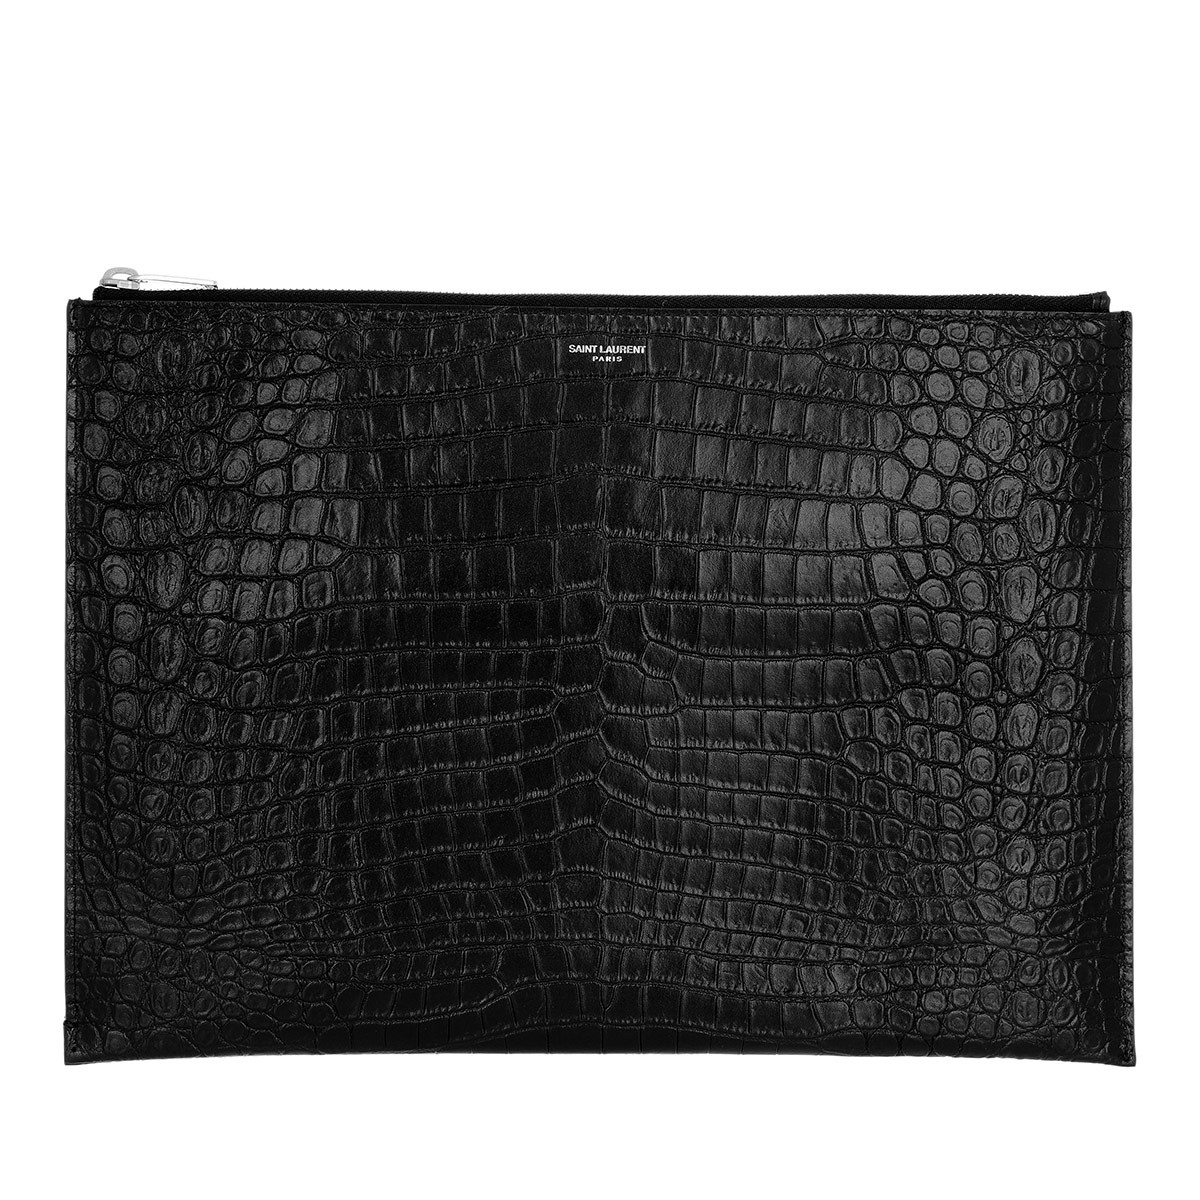 Saint Laurent Clutch - Embossed Crocodile Effect Clutch Black - in schwarz - für Damen